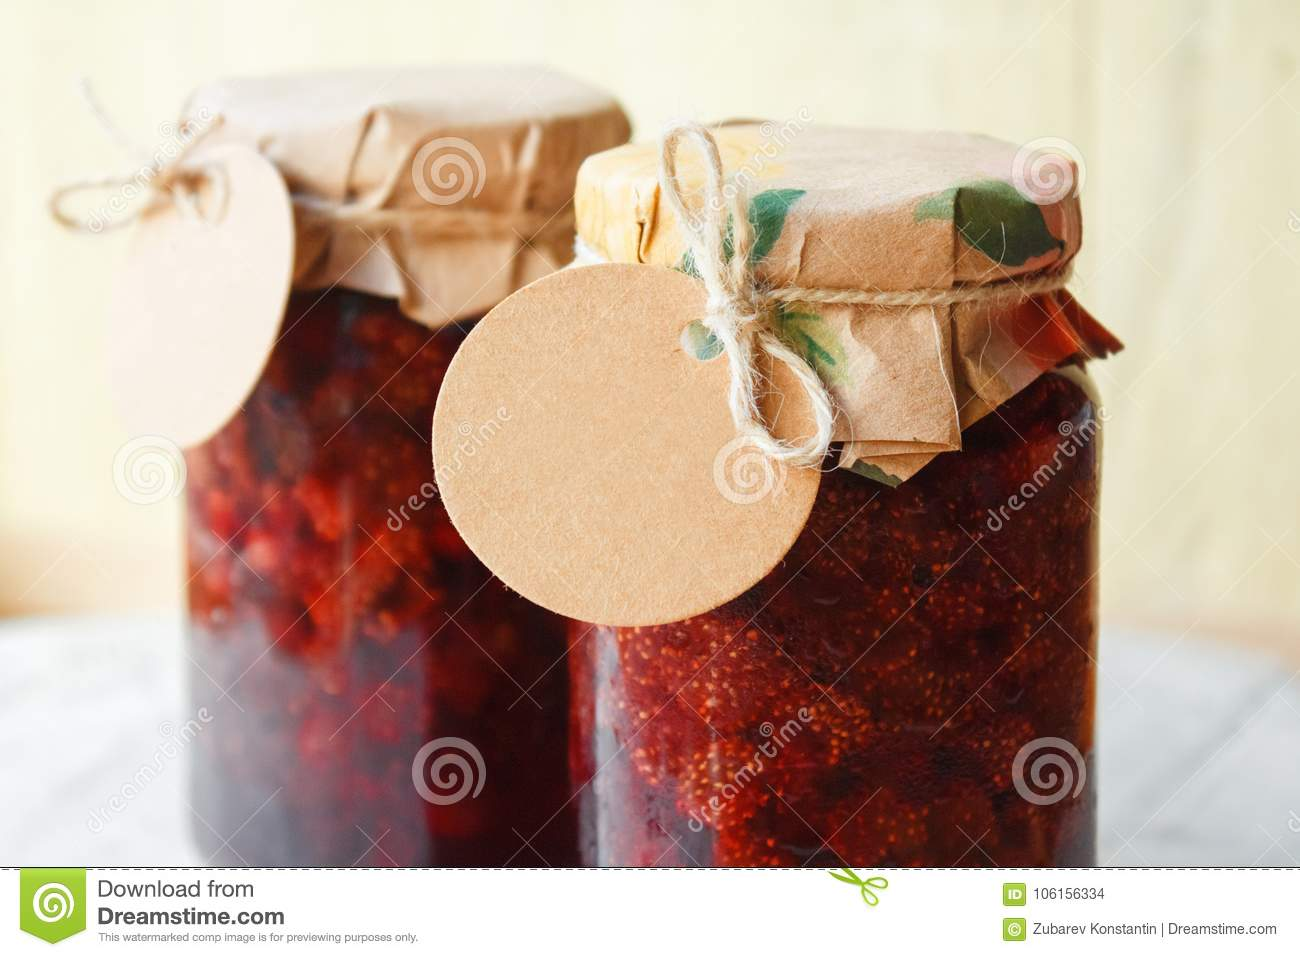 Strawberry jam with a blank label